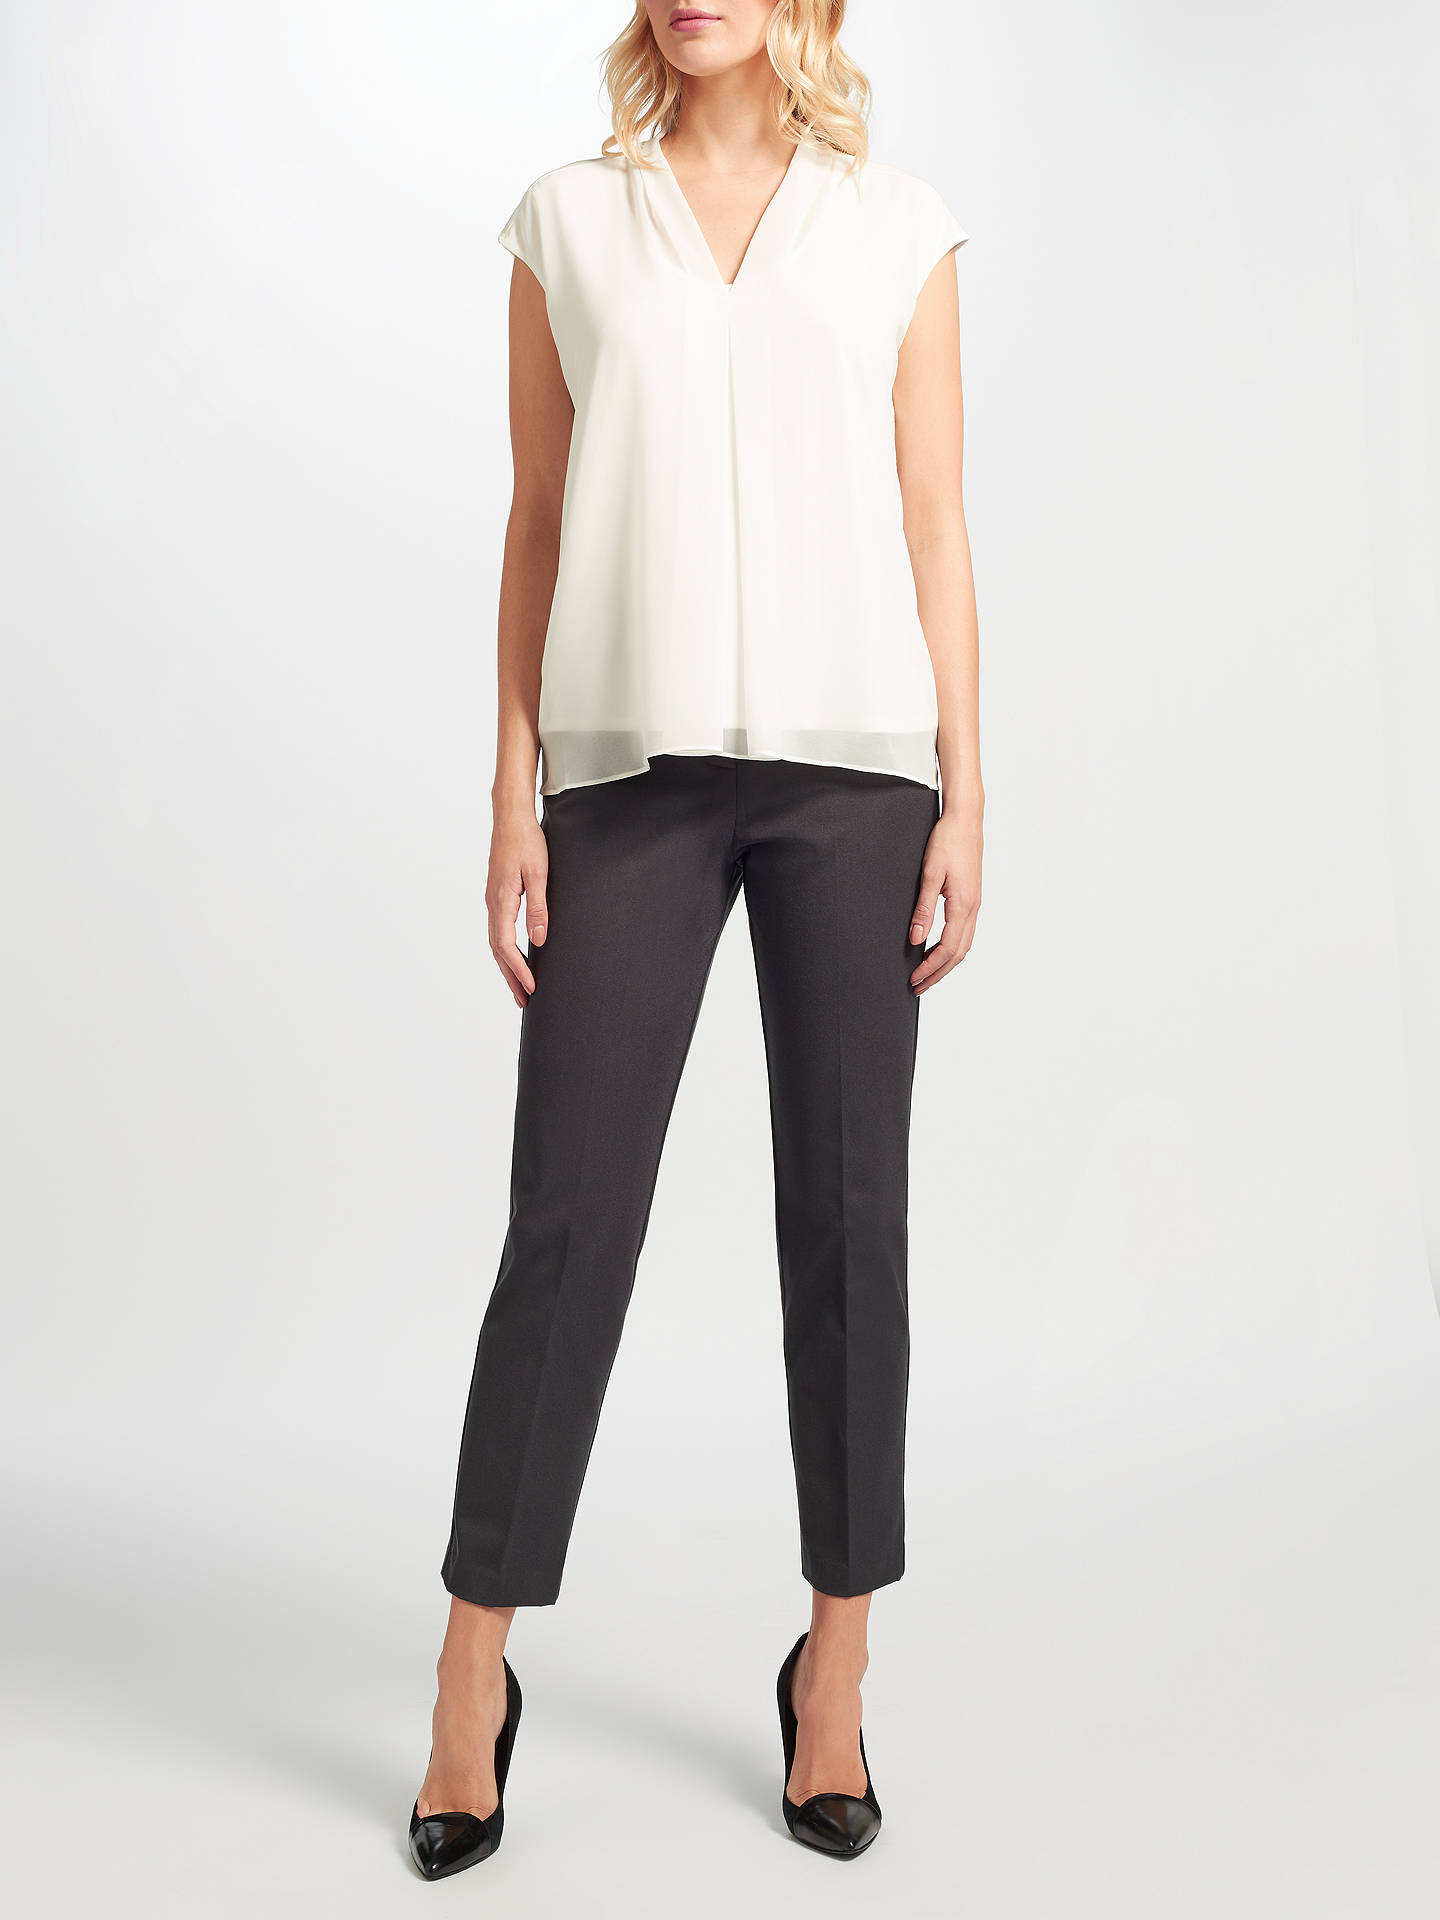 BuyJohn Lewis Cora Pleated Top, White, 8 Online at johnlewis.com